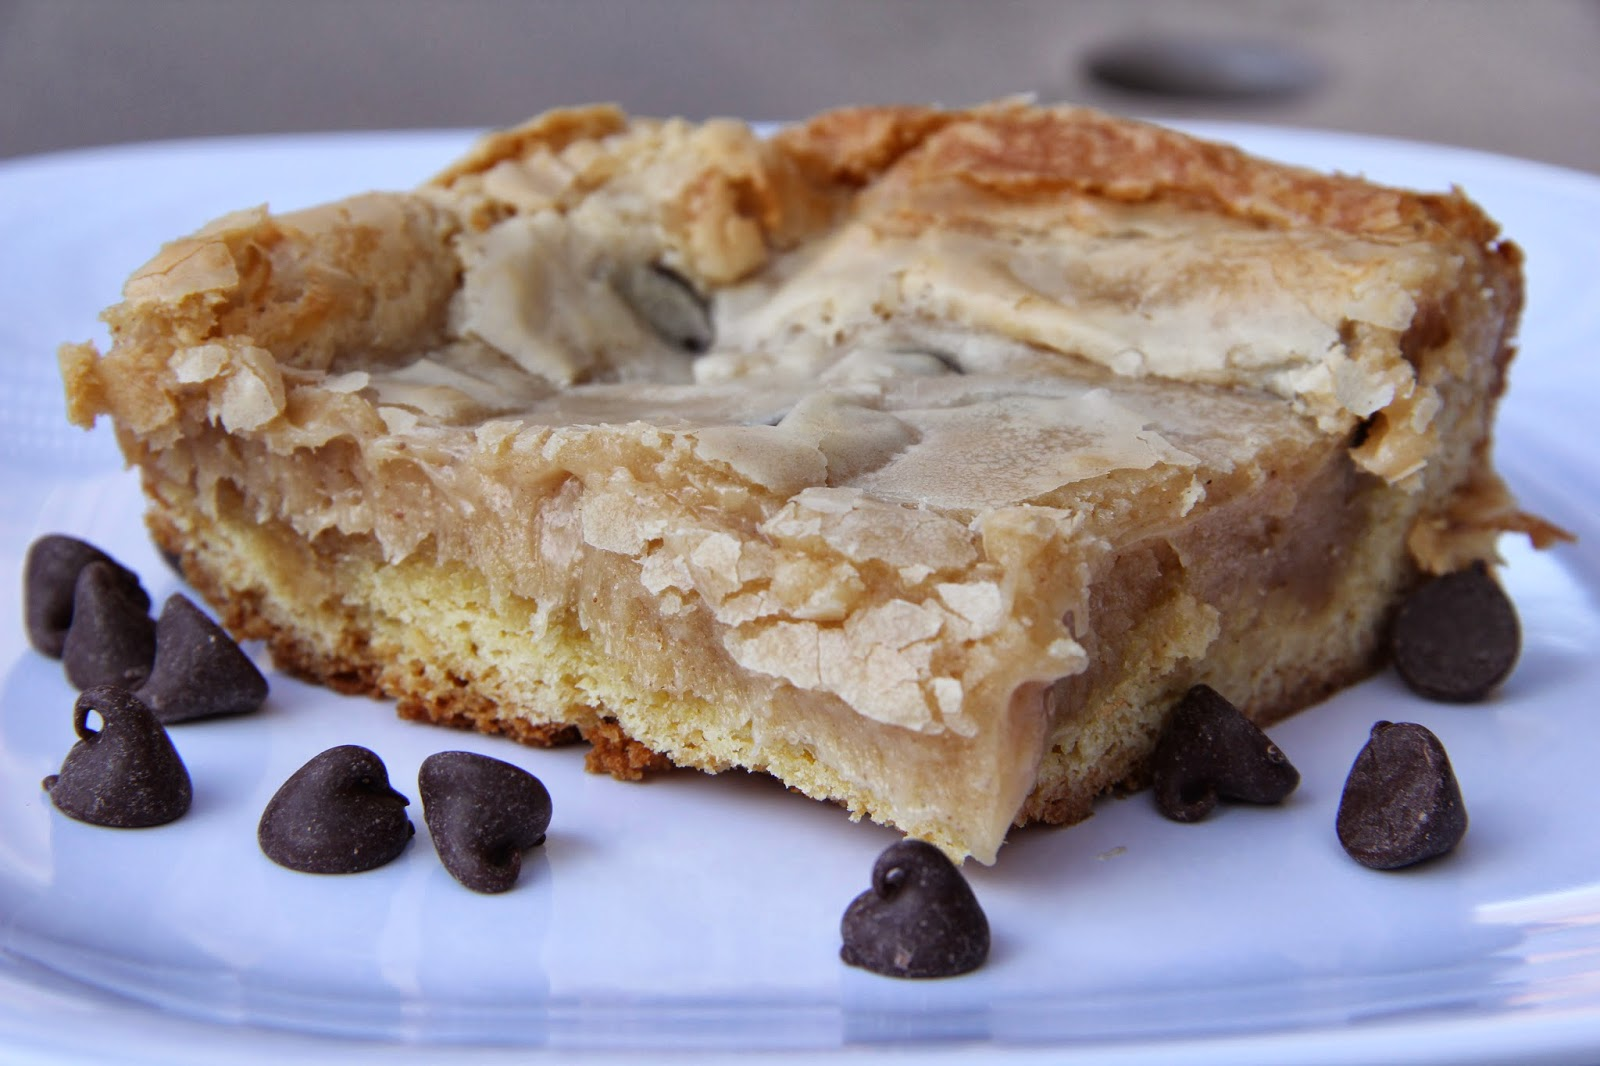 Peanut Butter Chocolate Chip Bars - Texas Peanut Producers Board